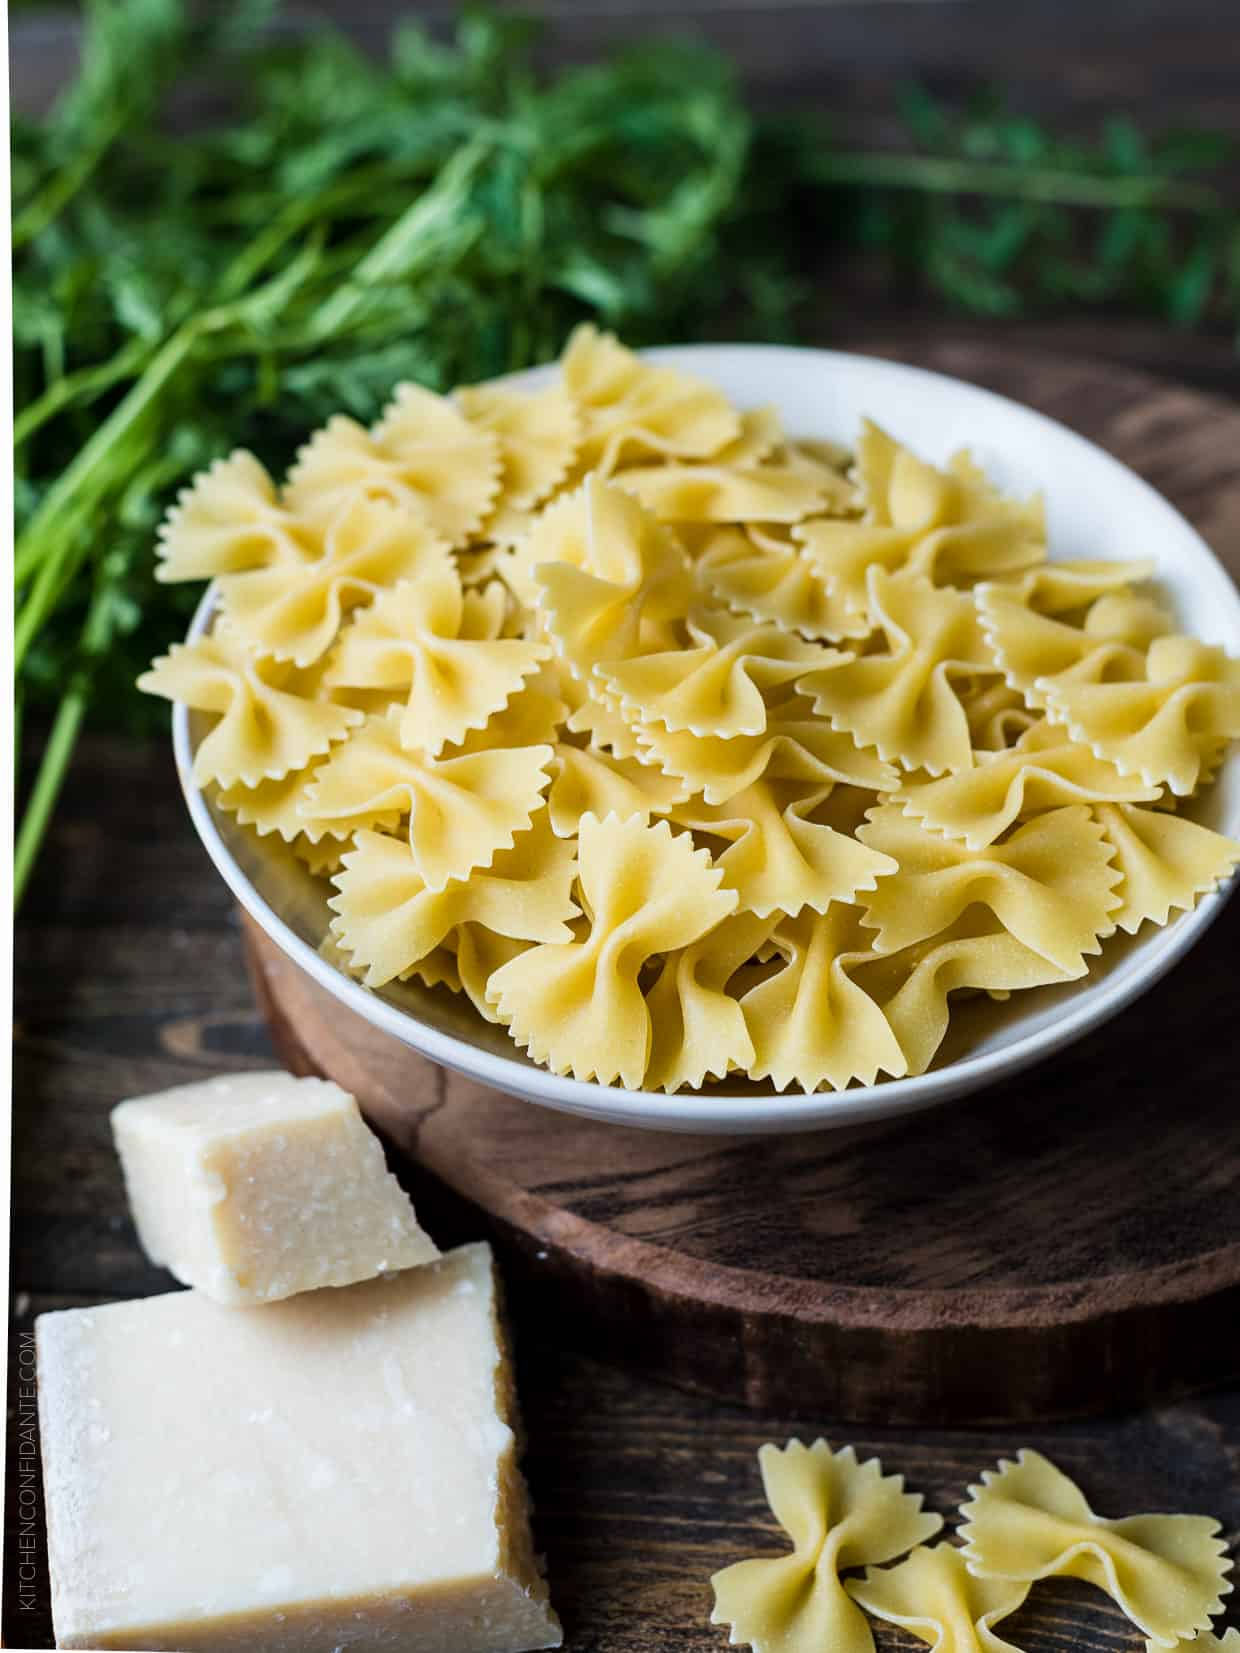 A bowl of dried farfalle pasta.